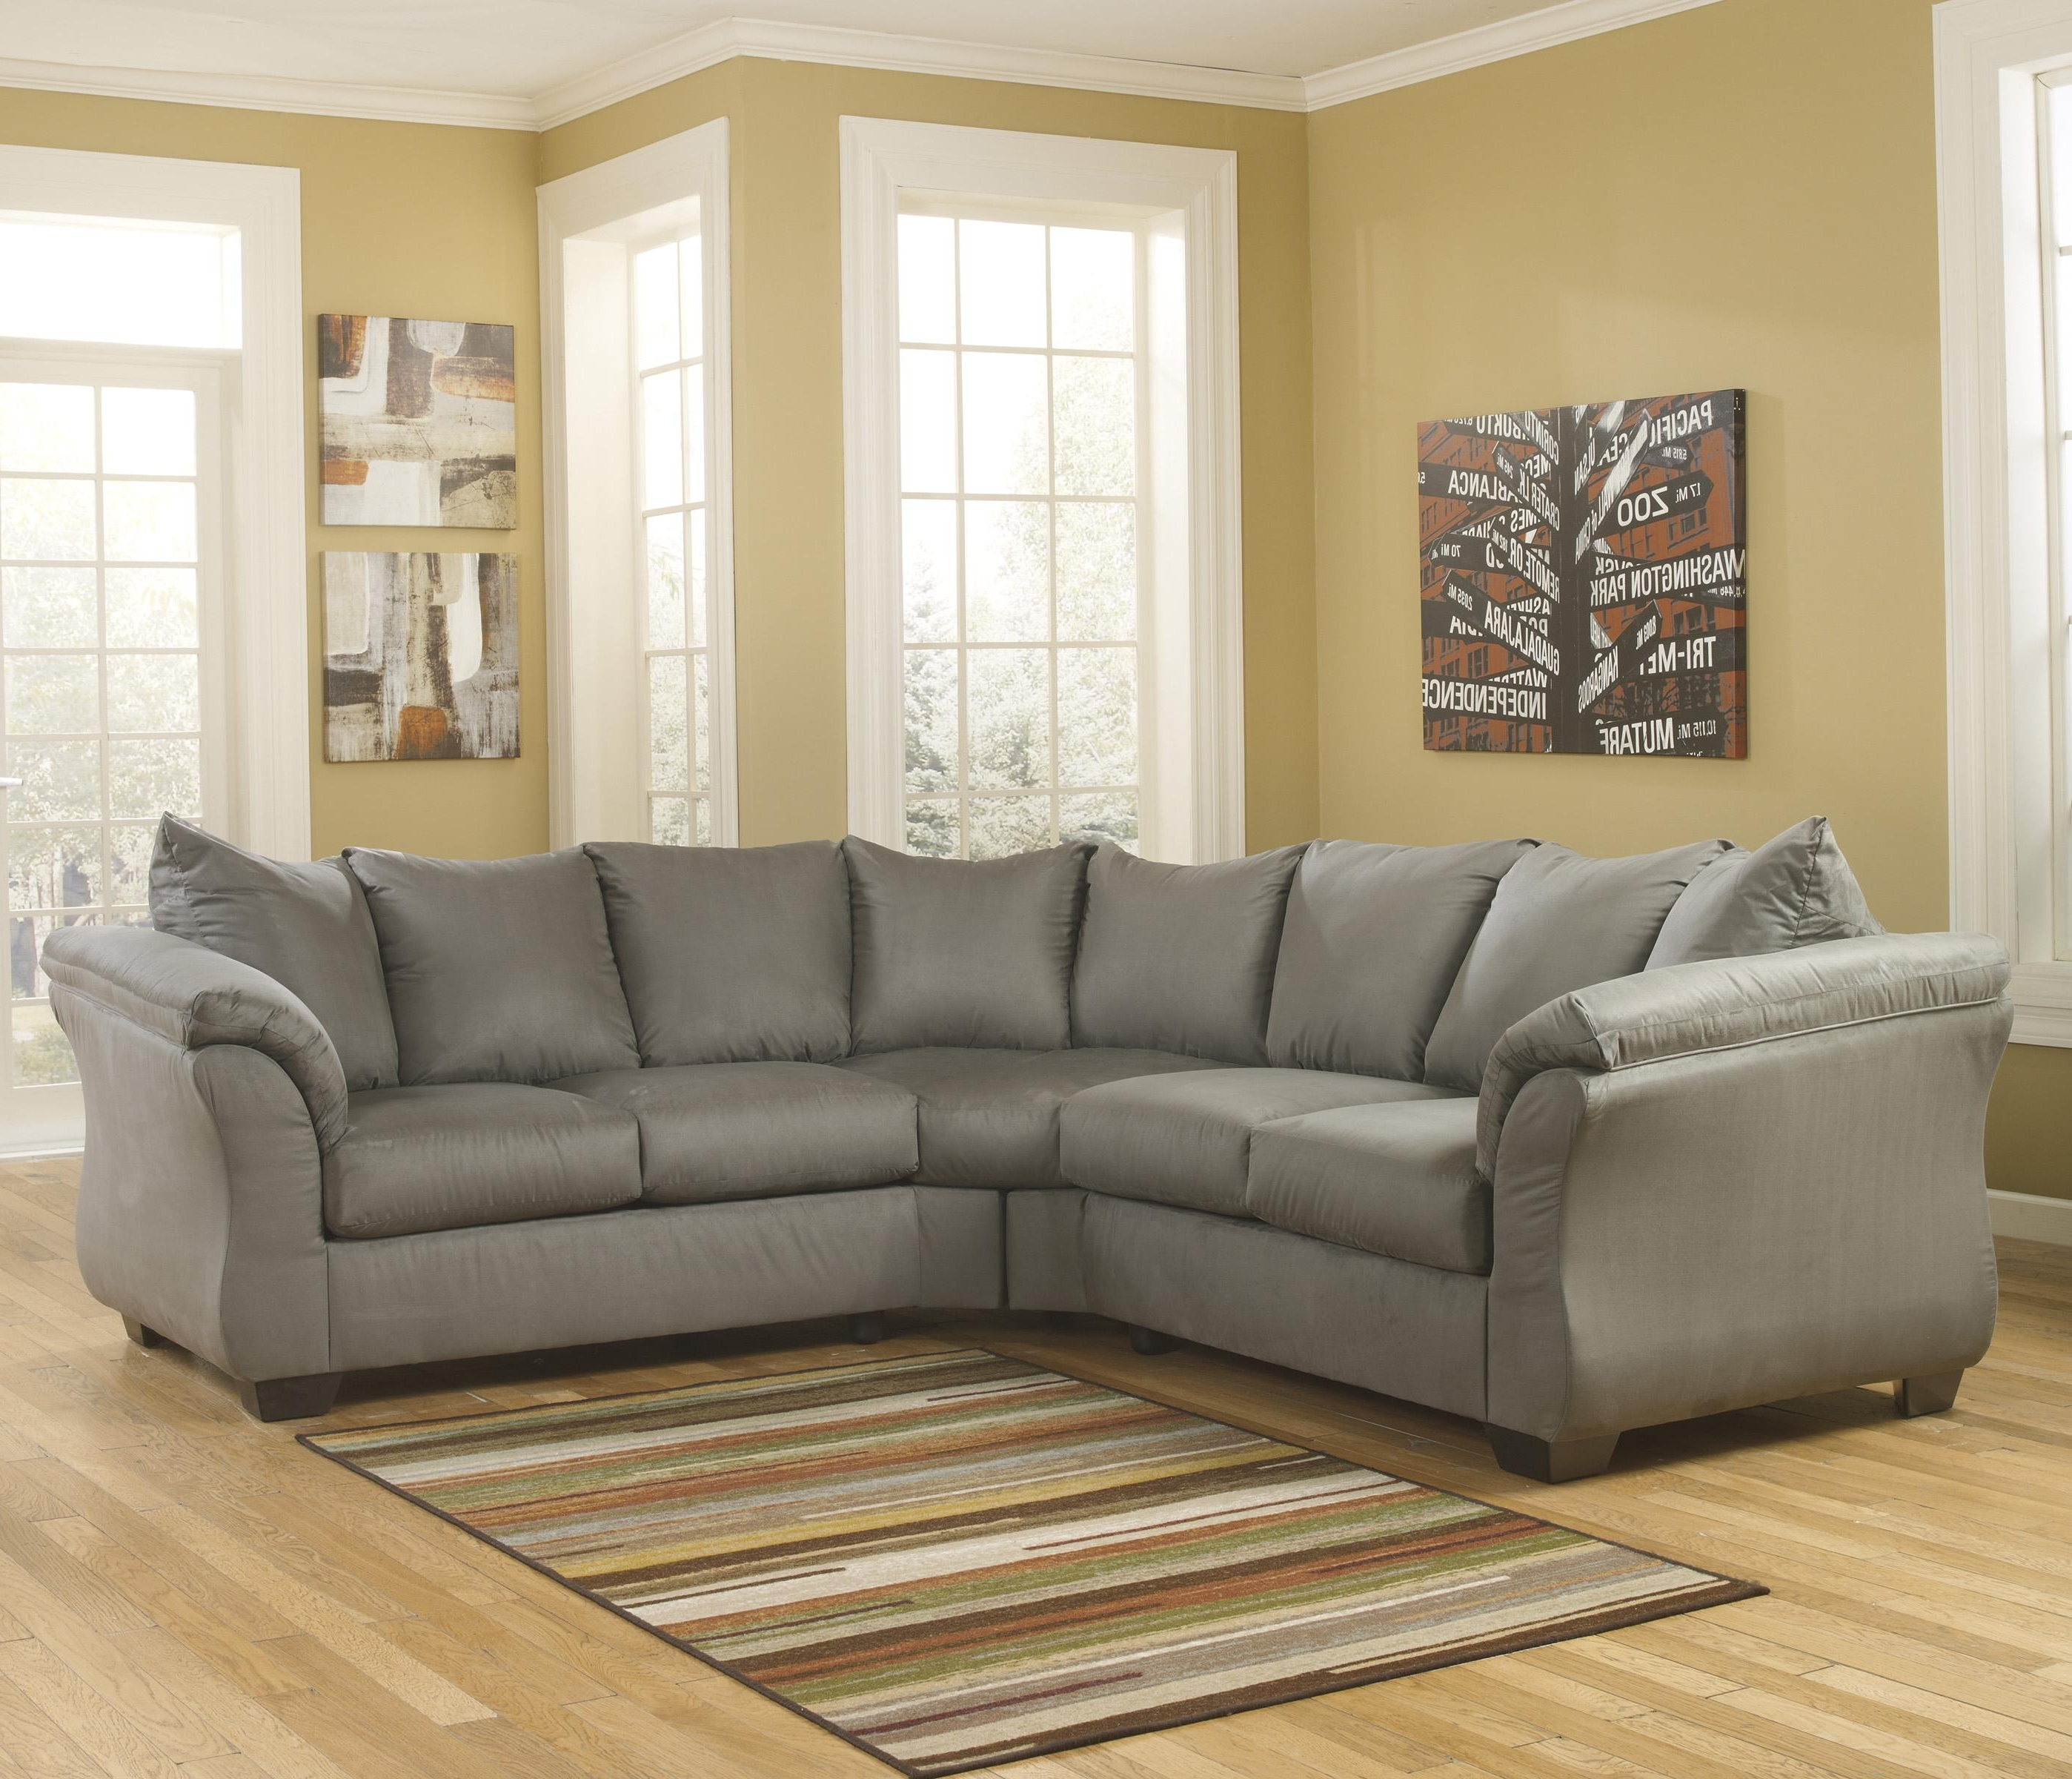 Darcy – Cobblestone Sectional Sofasignature Designashley Regarding Favorite Sectional Sofas In Greensboro Nc (View 4 of 20)